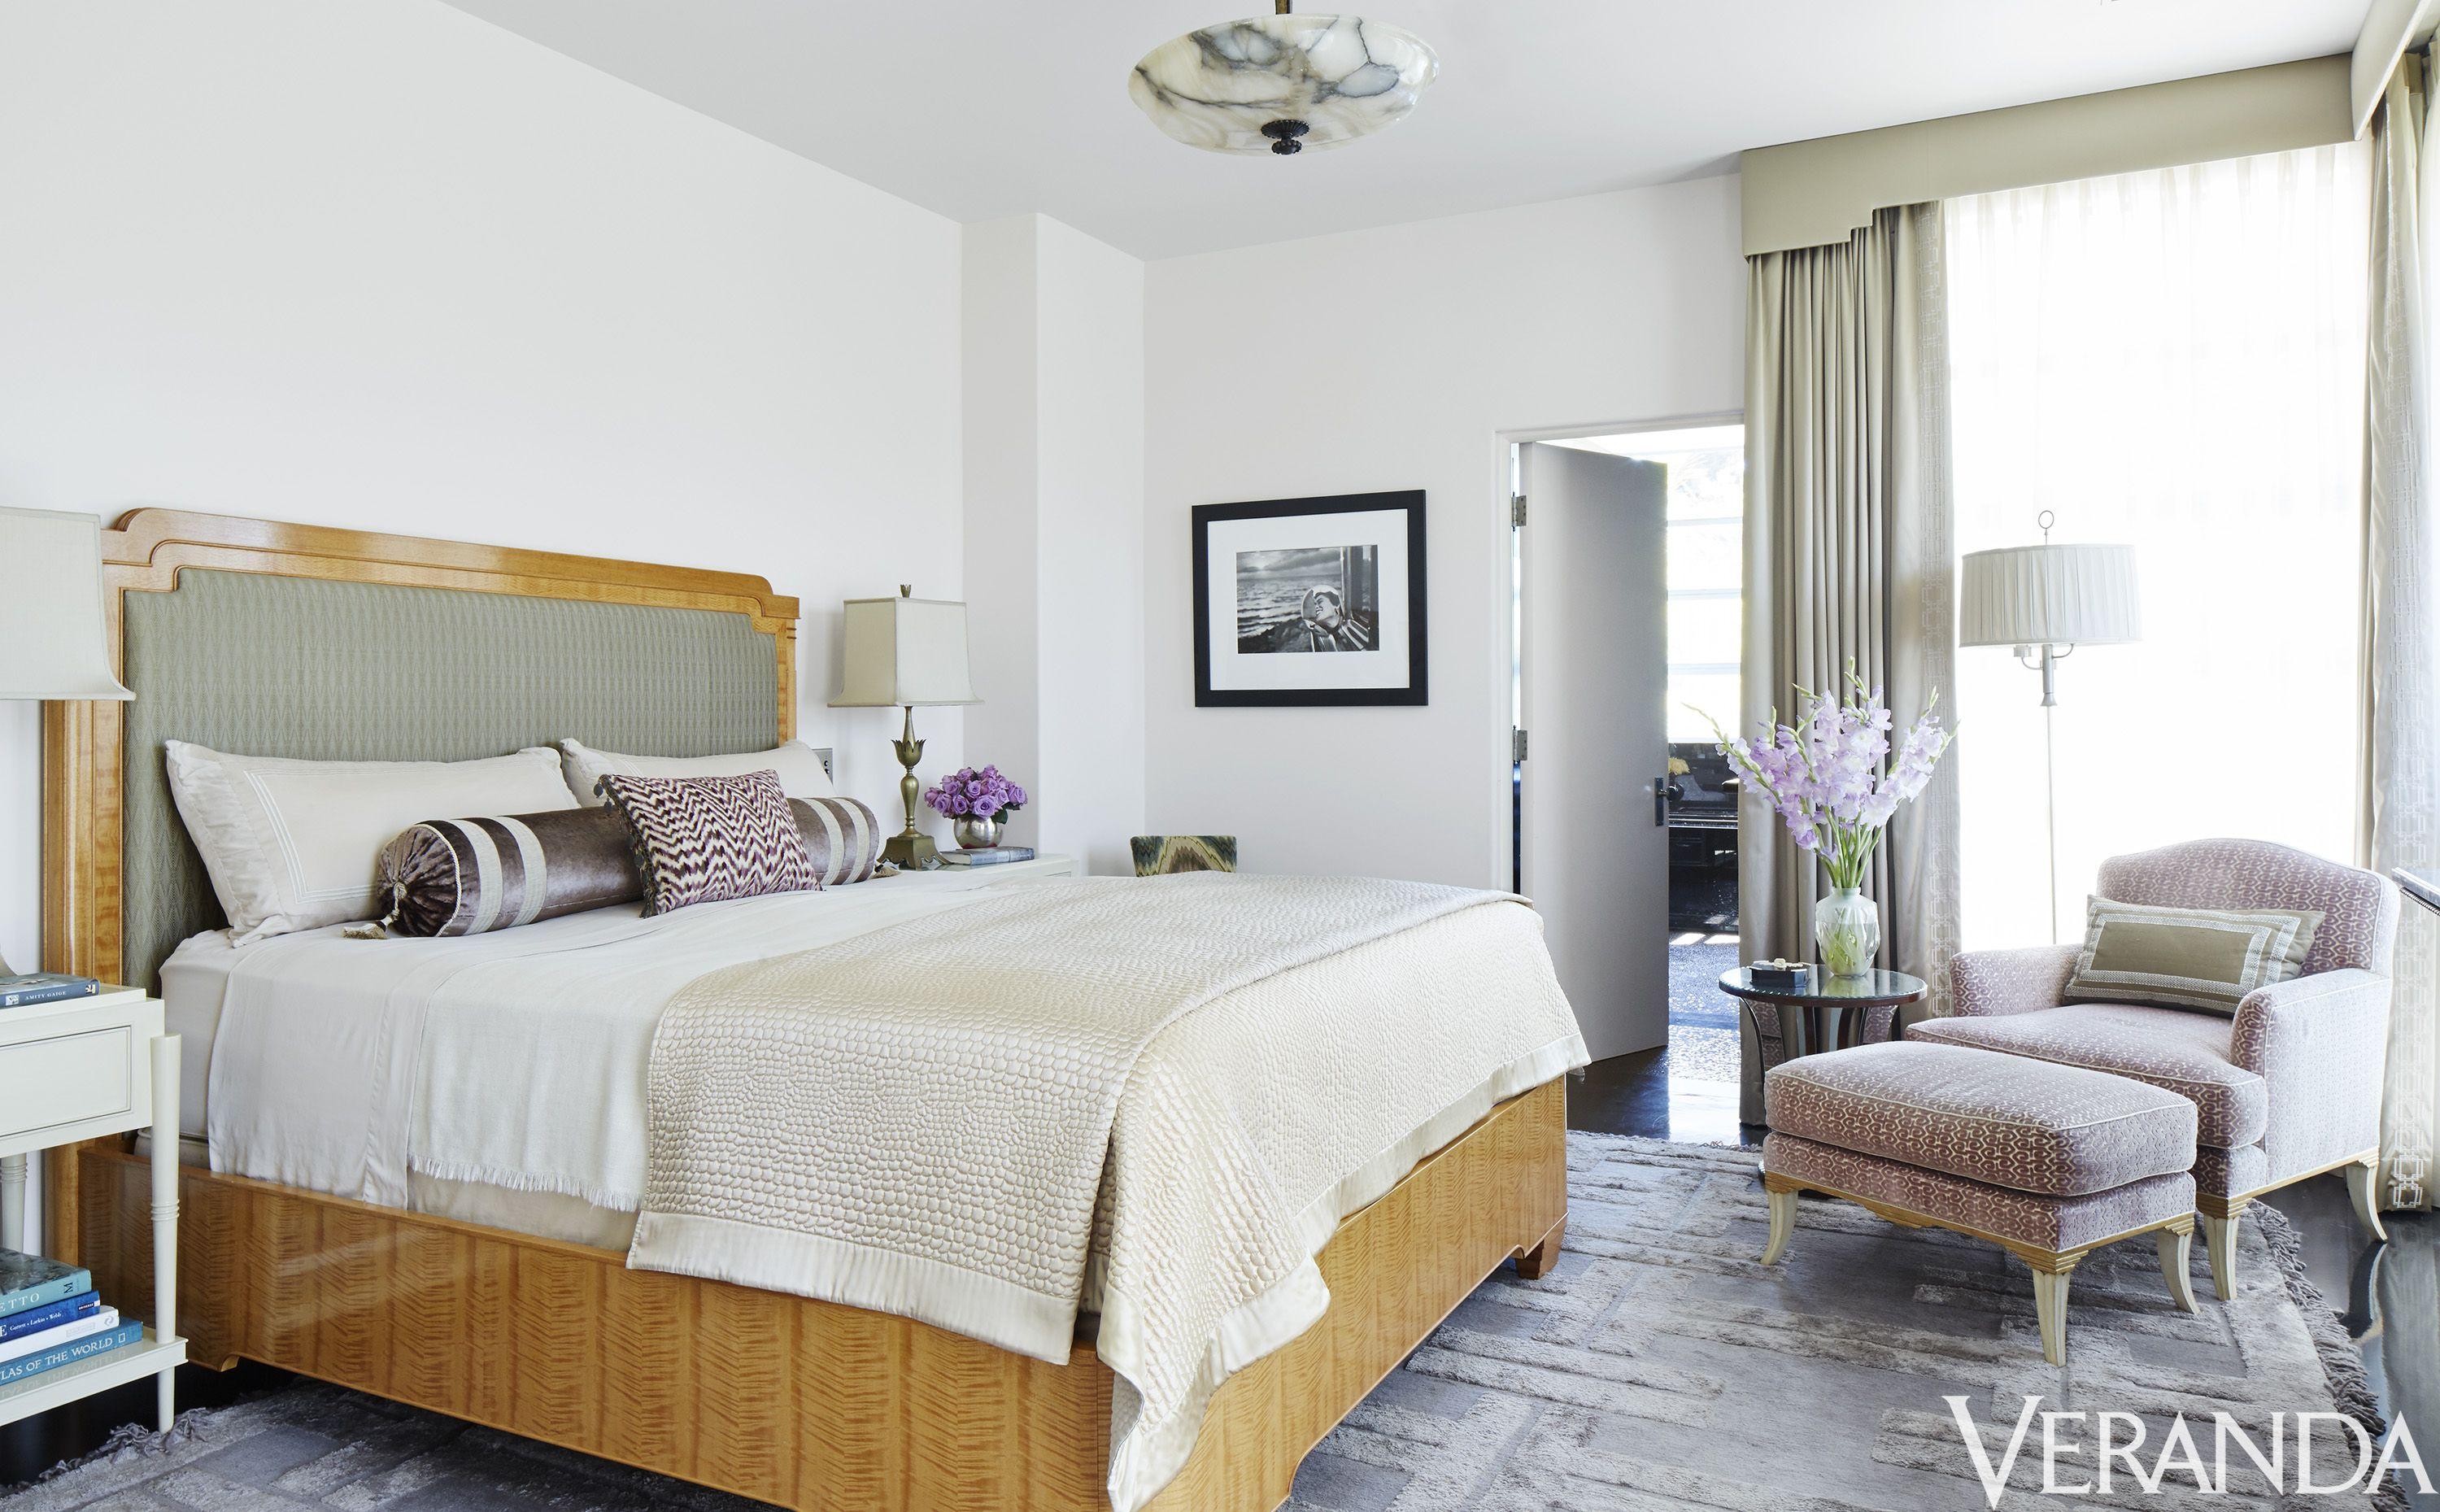 ideas traditional bedding cheap eaves bed in bedroom budget neutral bedrooms the decor